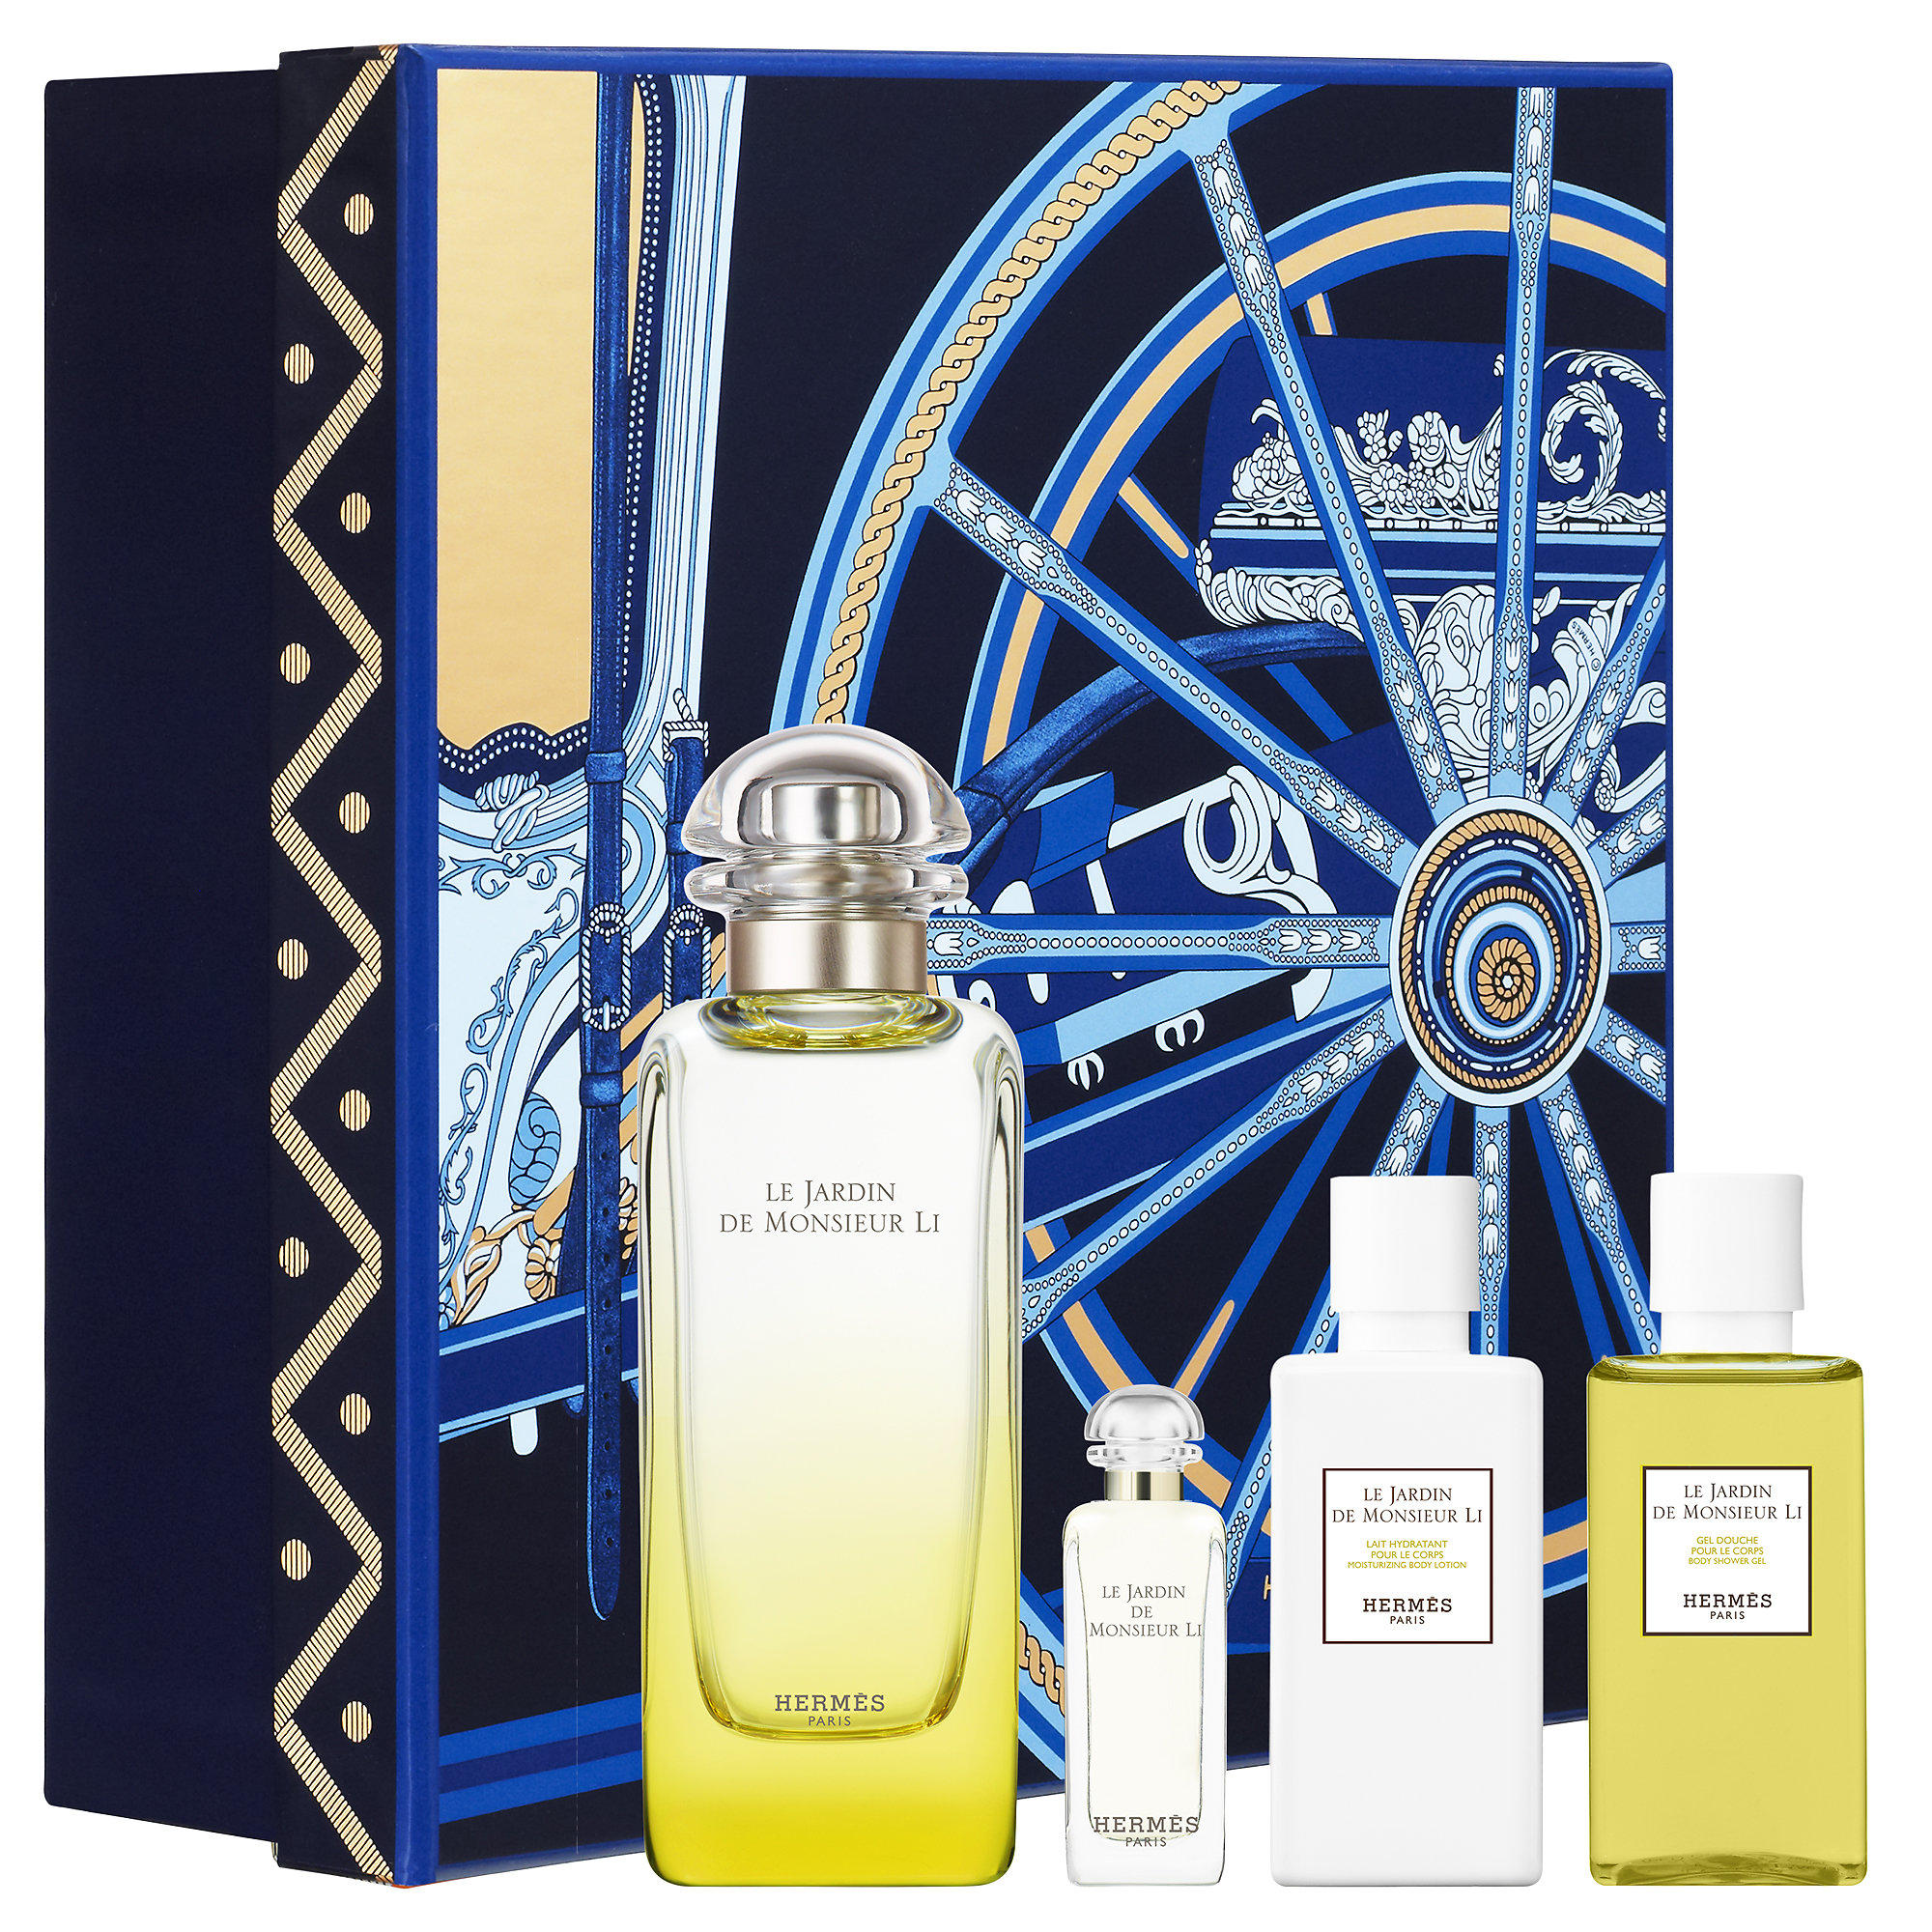 New Release HERMÈS launched New Monsieur Gift Set